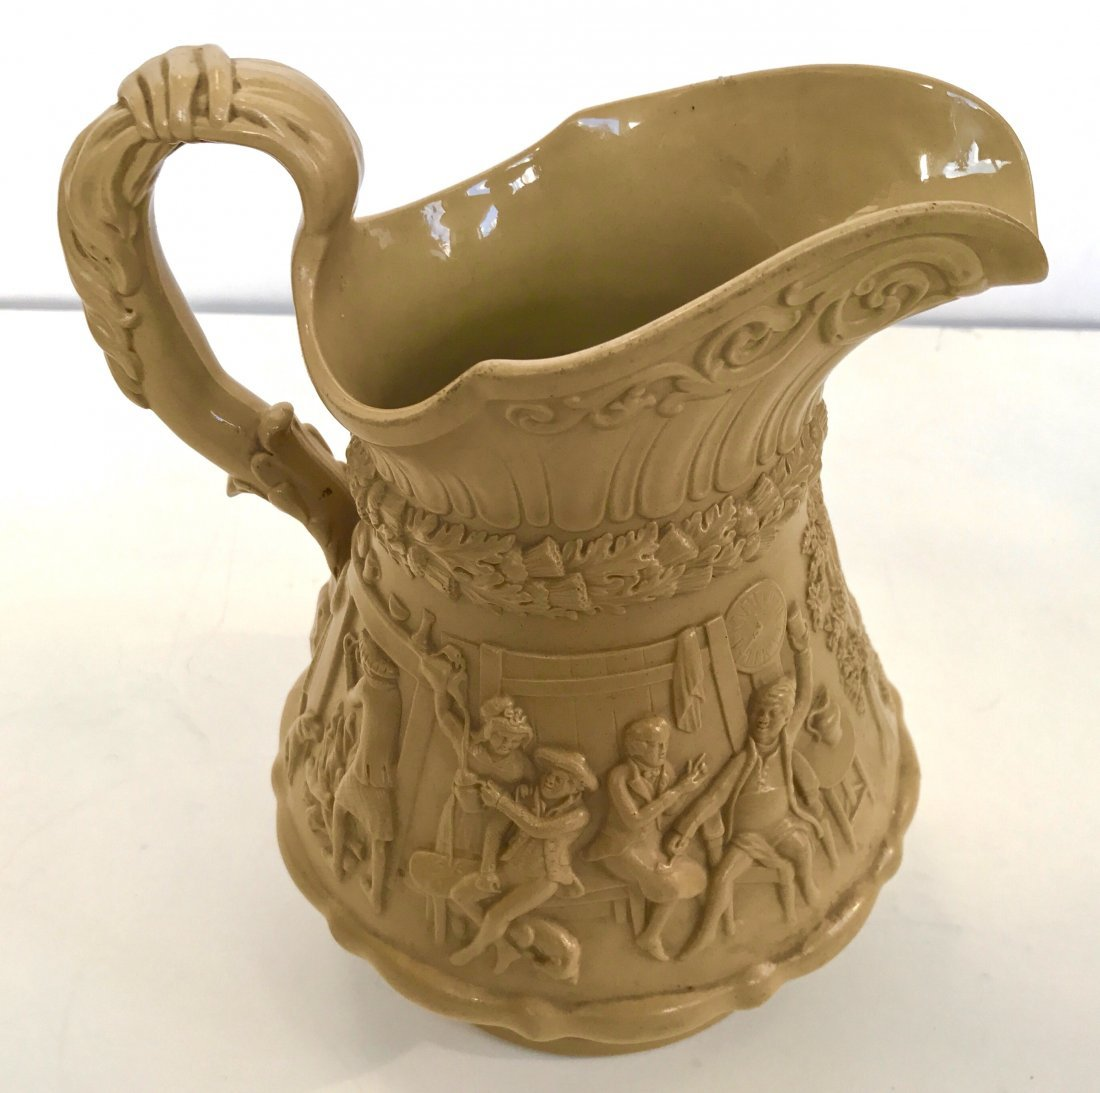 William Ridgway, Tam O'Shanter, Stoneware Pitcher, 1835 - 7